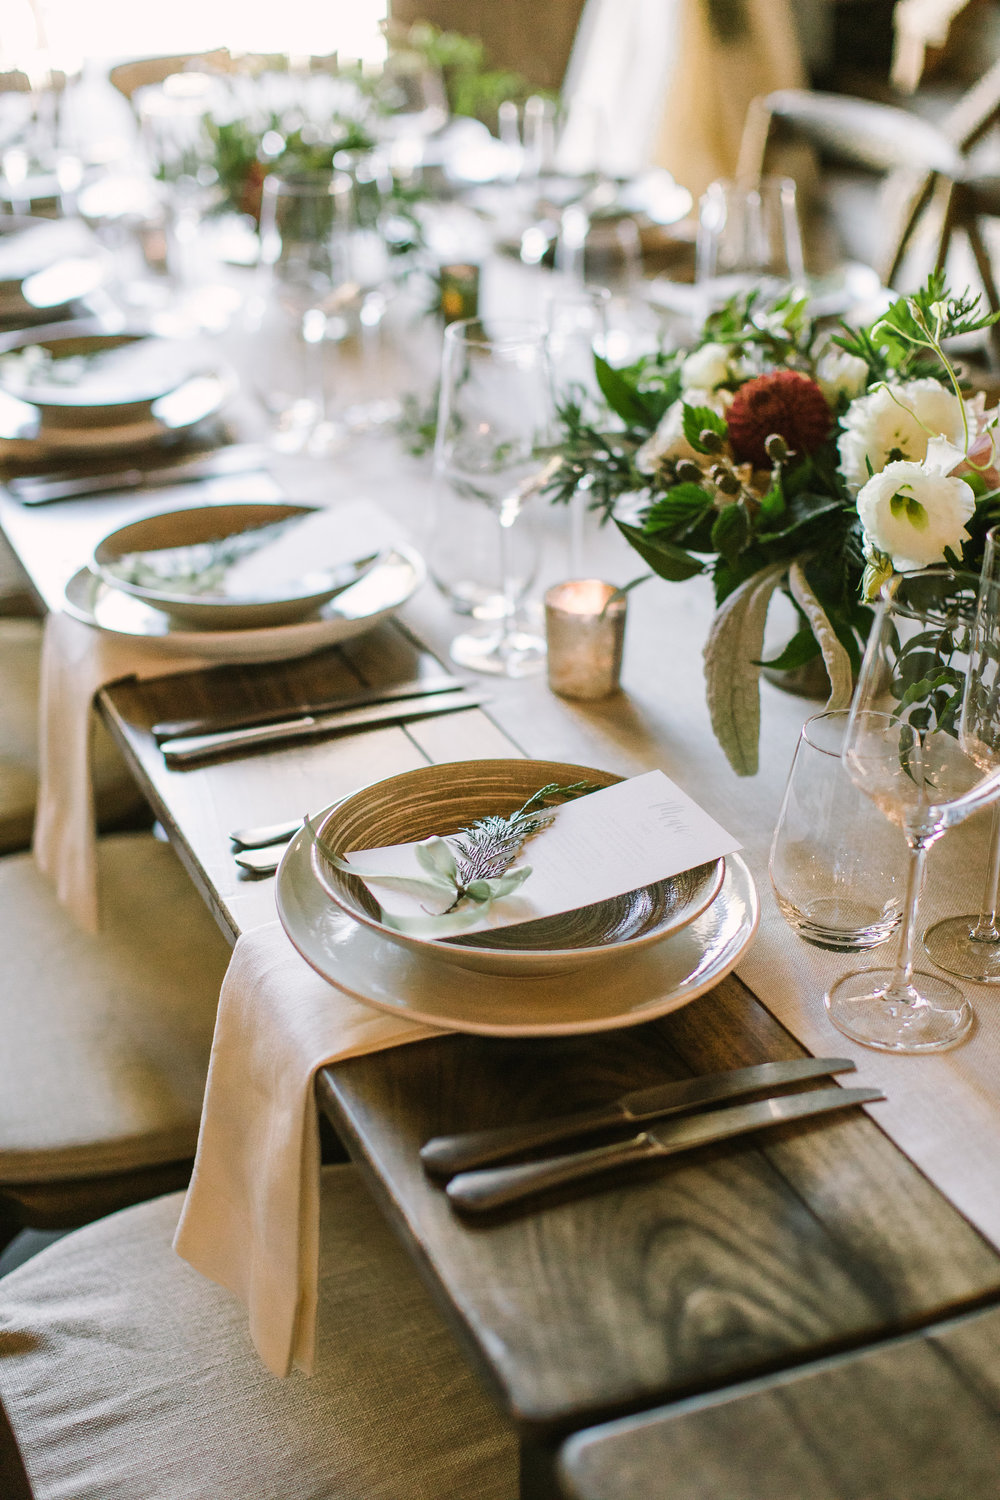 Greenery napkin sprigs for an elegant wedding by Venn Floral at Olympia's Valley Estate photographed by The Edges.